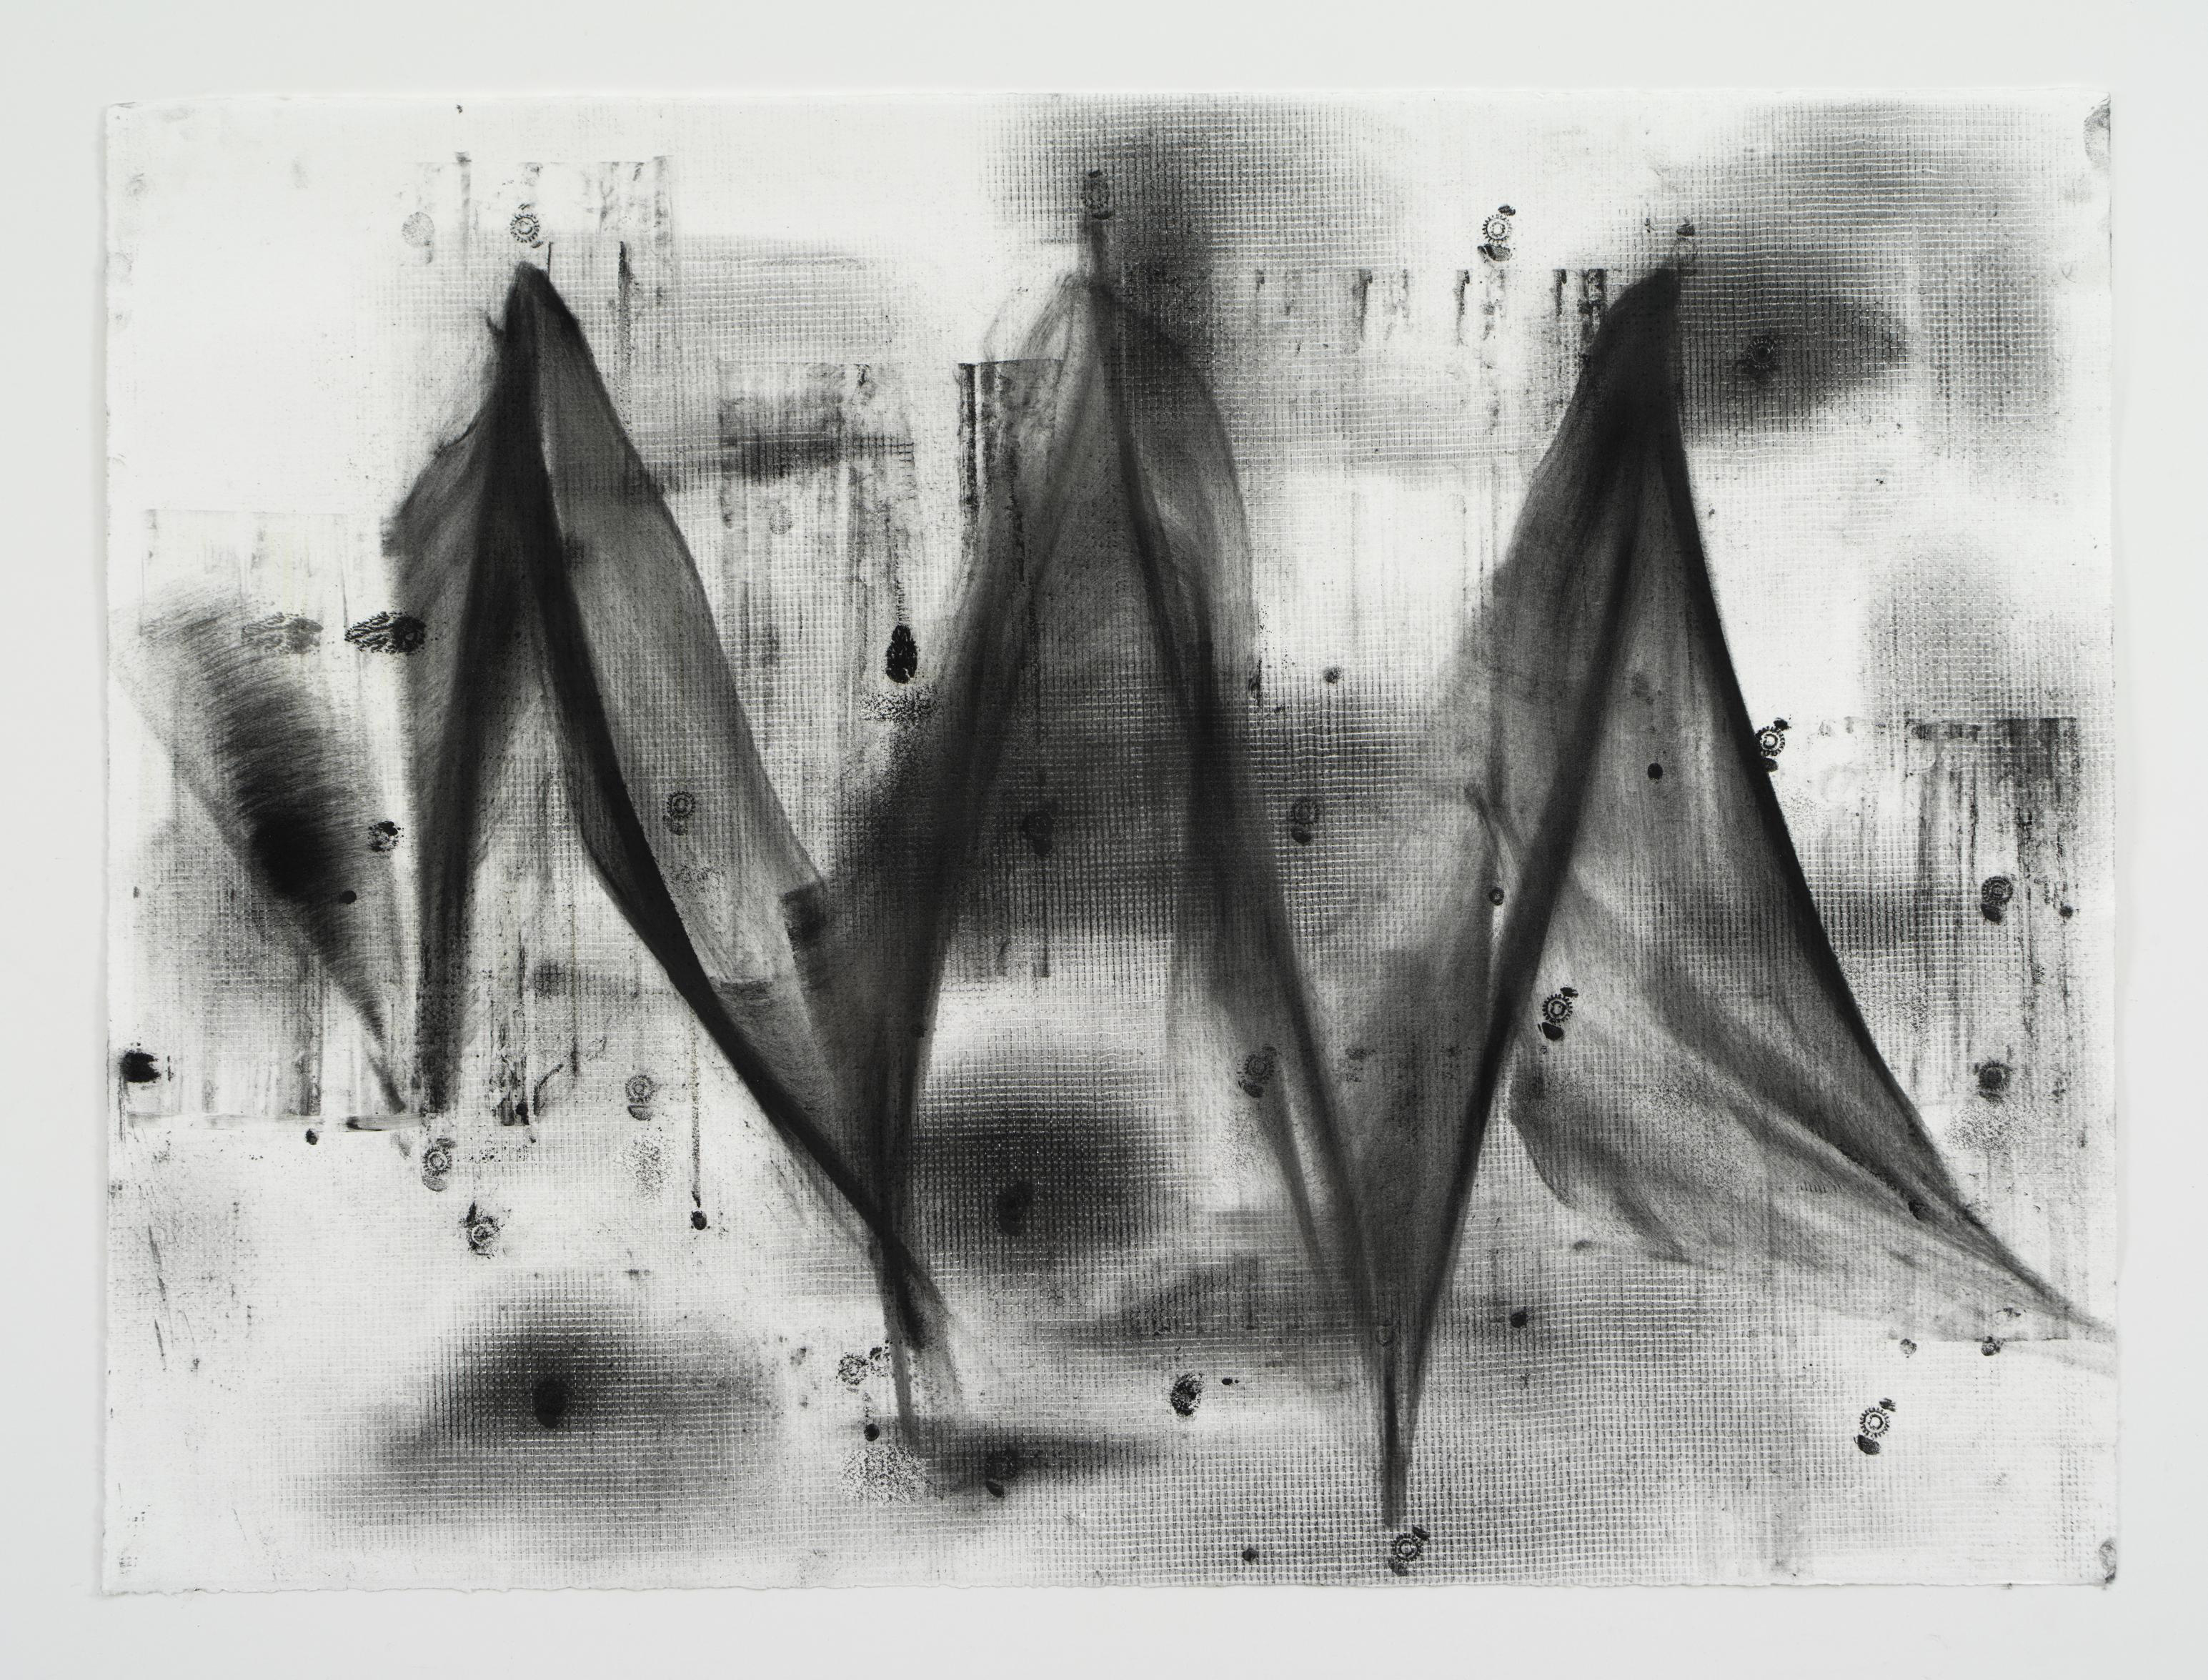 Apparitions: Frottages and Rubbings from 1860 to Now - Hammer Museum